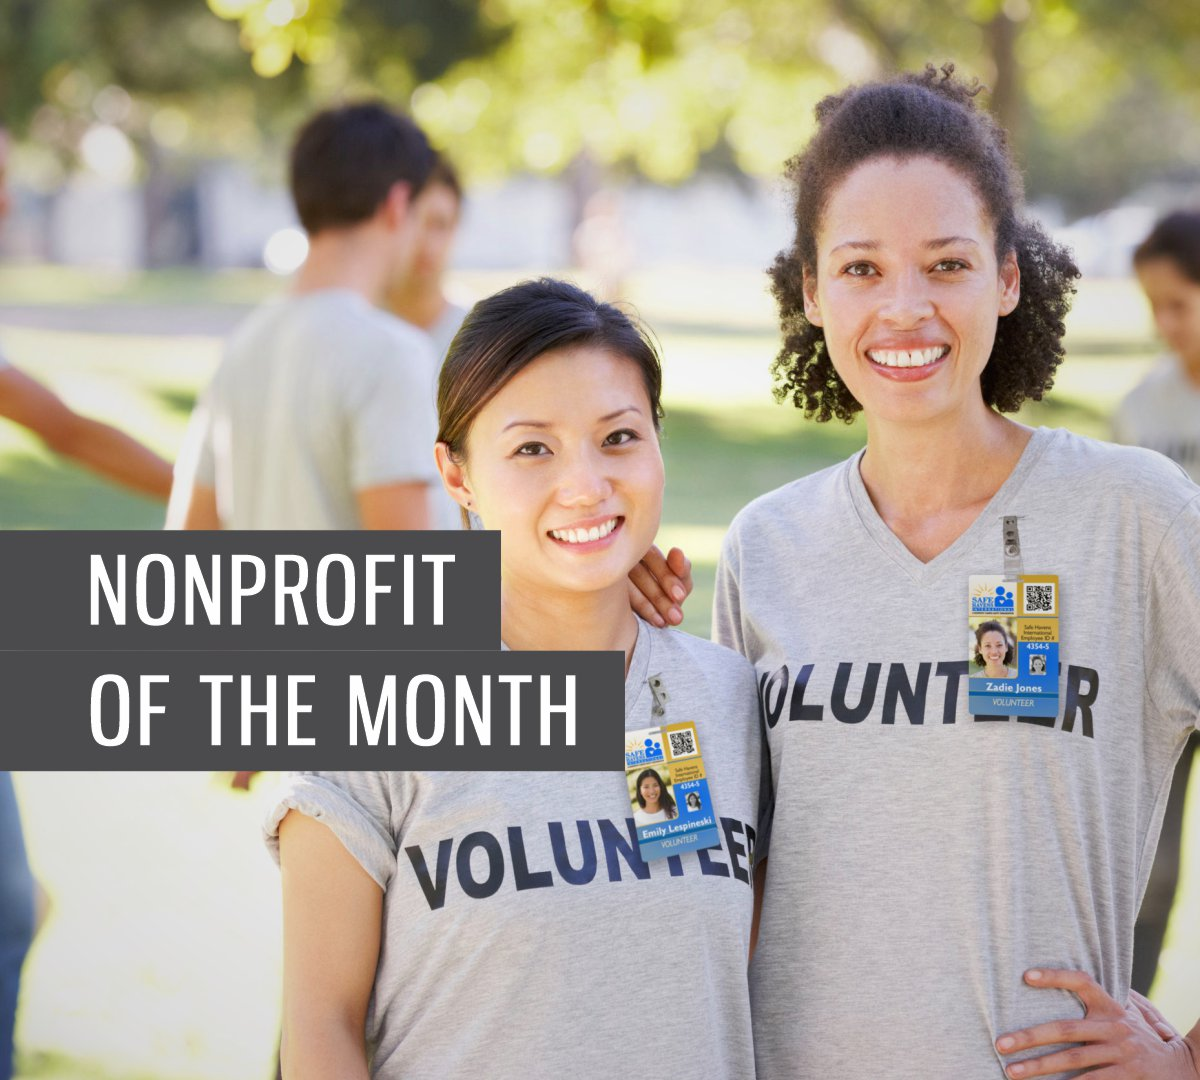 Nonprofit of the Month